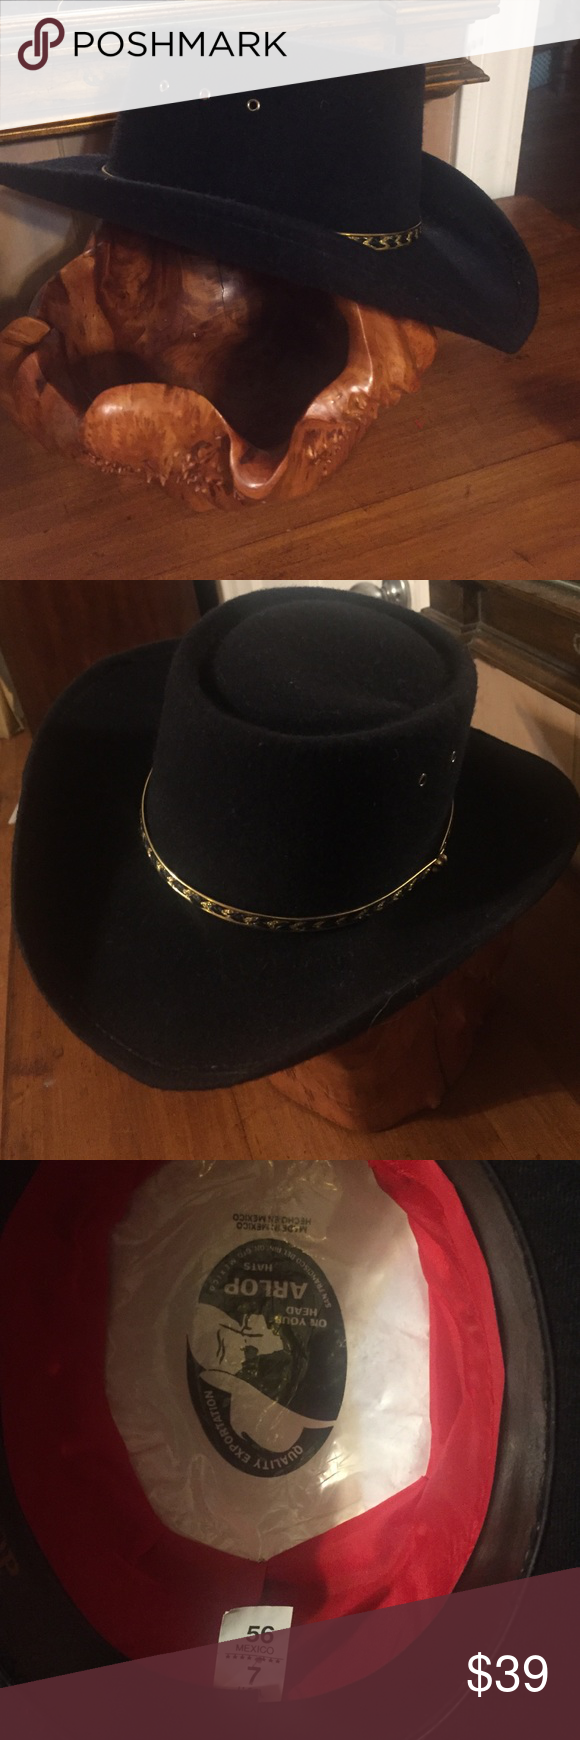 Size 7 🍂Vintage Arlop Black Cowboy Hat. Size 7. 100% wool. Metal gold and black  hat band. Made in Mexico. Excellent vintage condition. Vintage Accessories  ... ed3f23234ee7